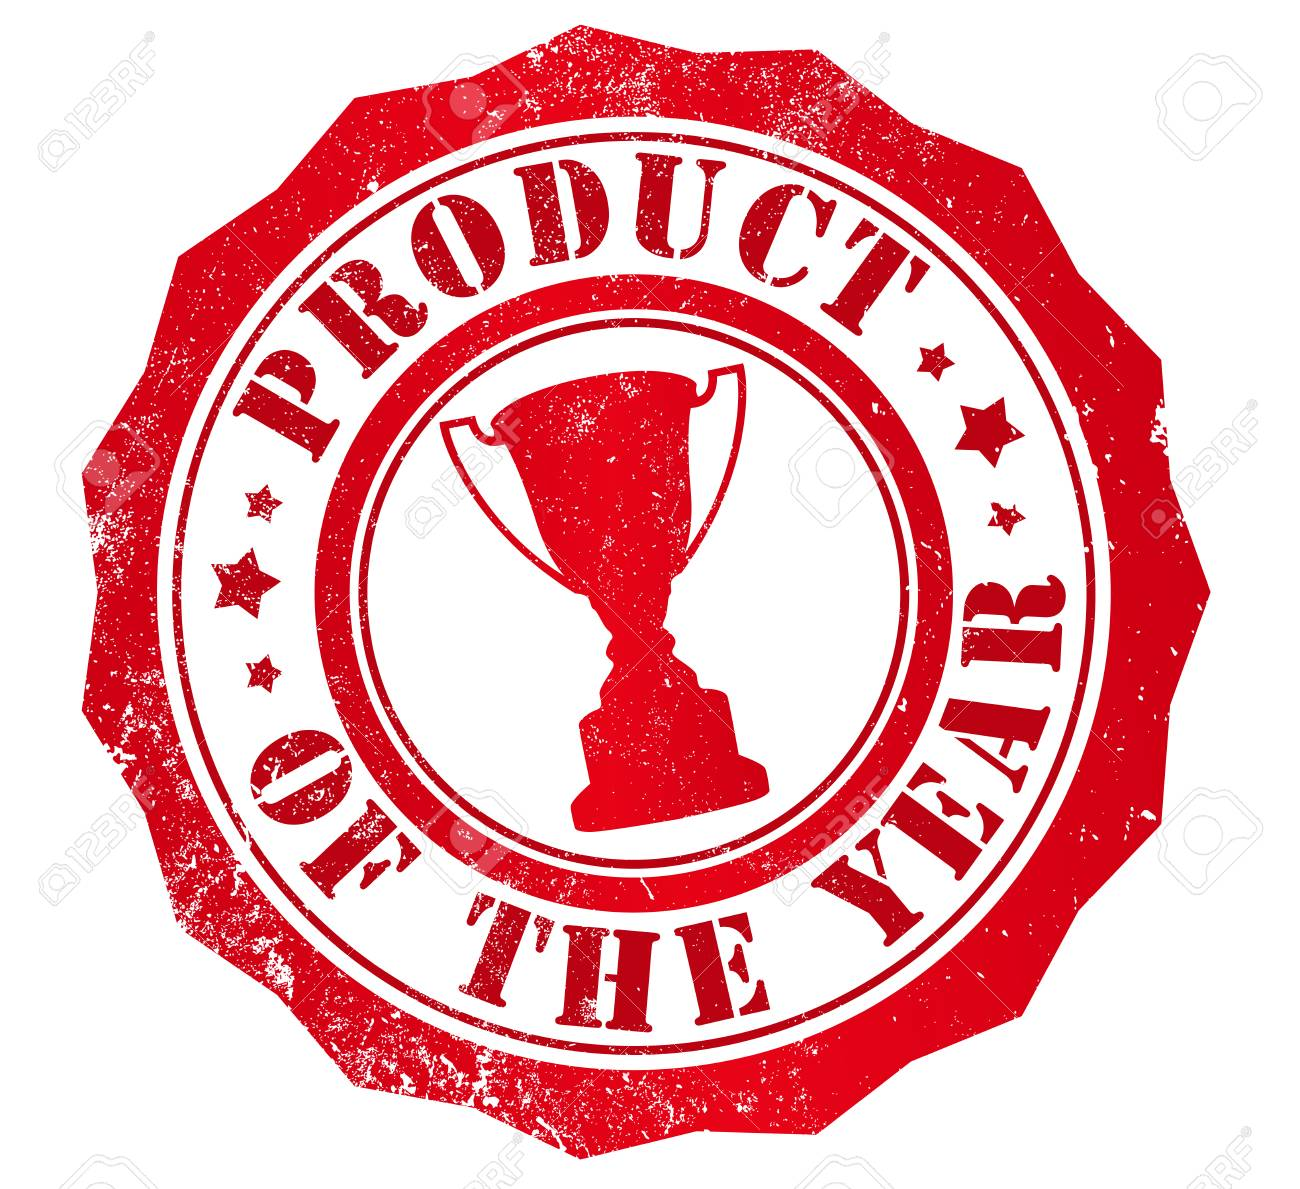 Product Of The Year Grunge Stamp In English Language Stock Photo